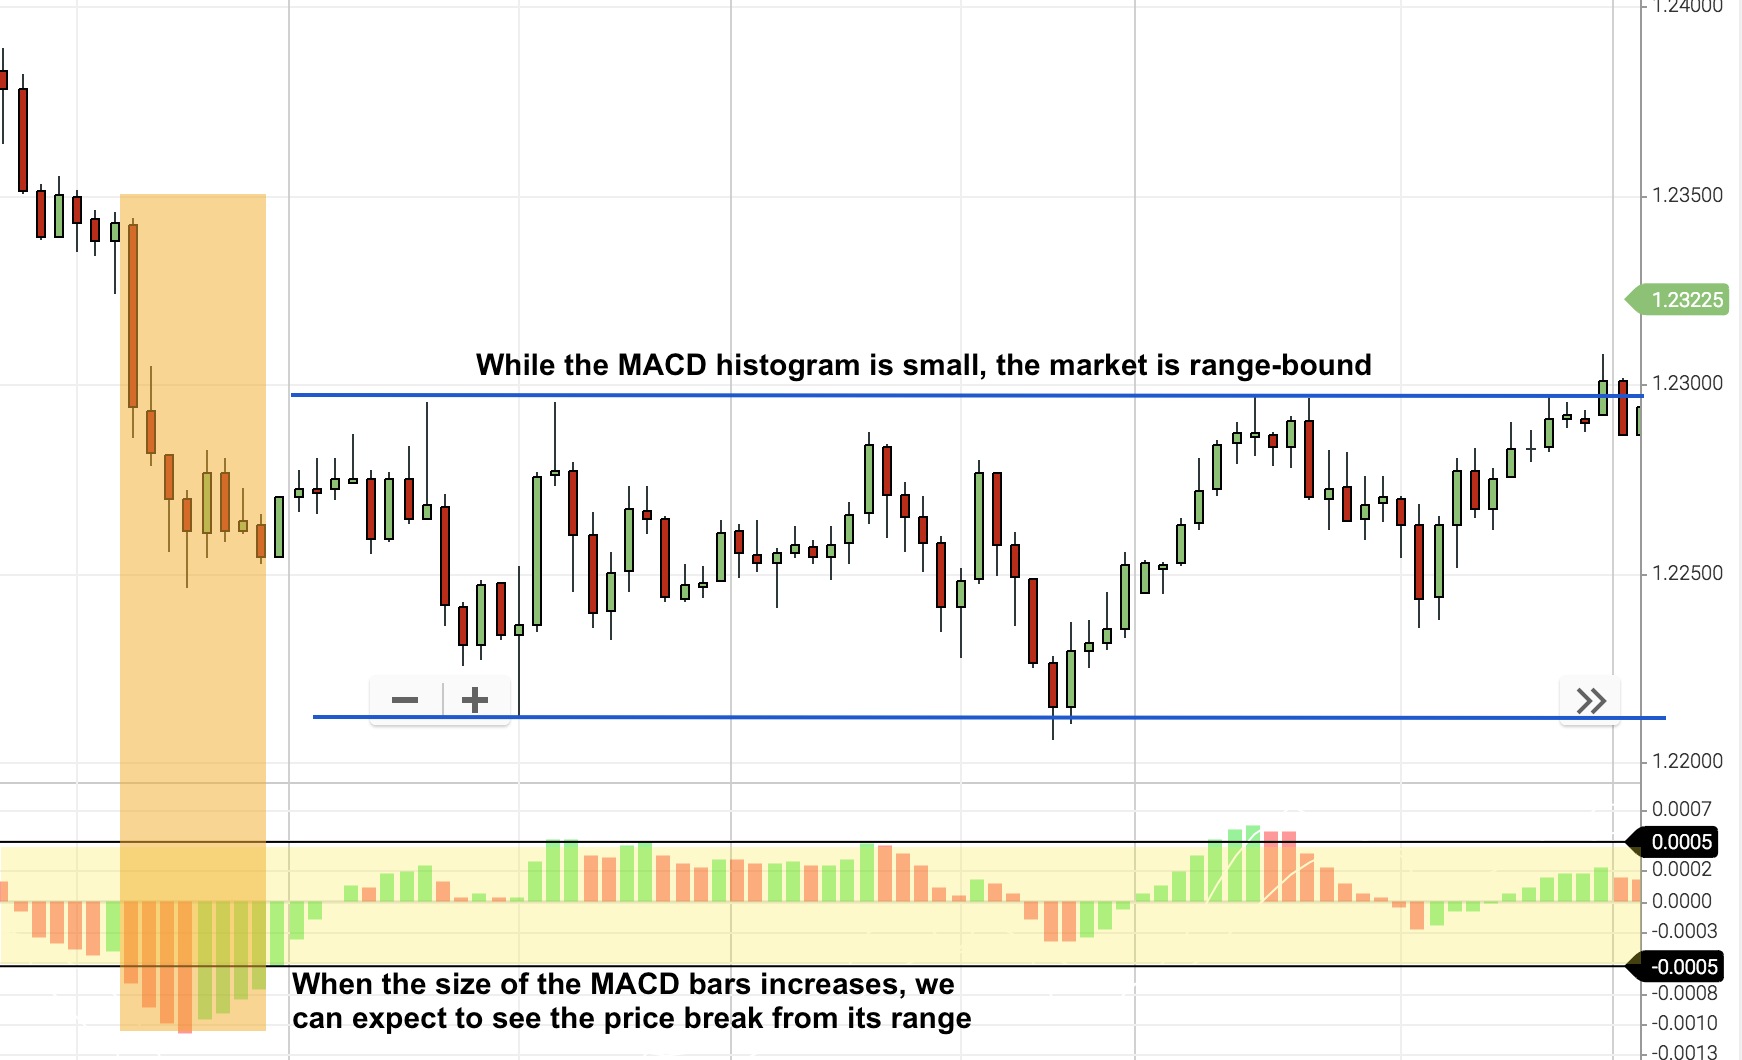 range bound markets macd